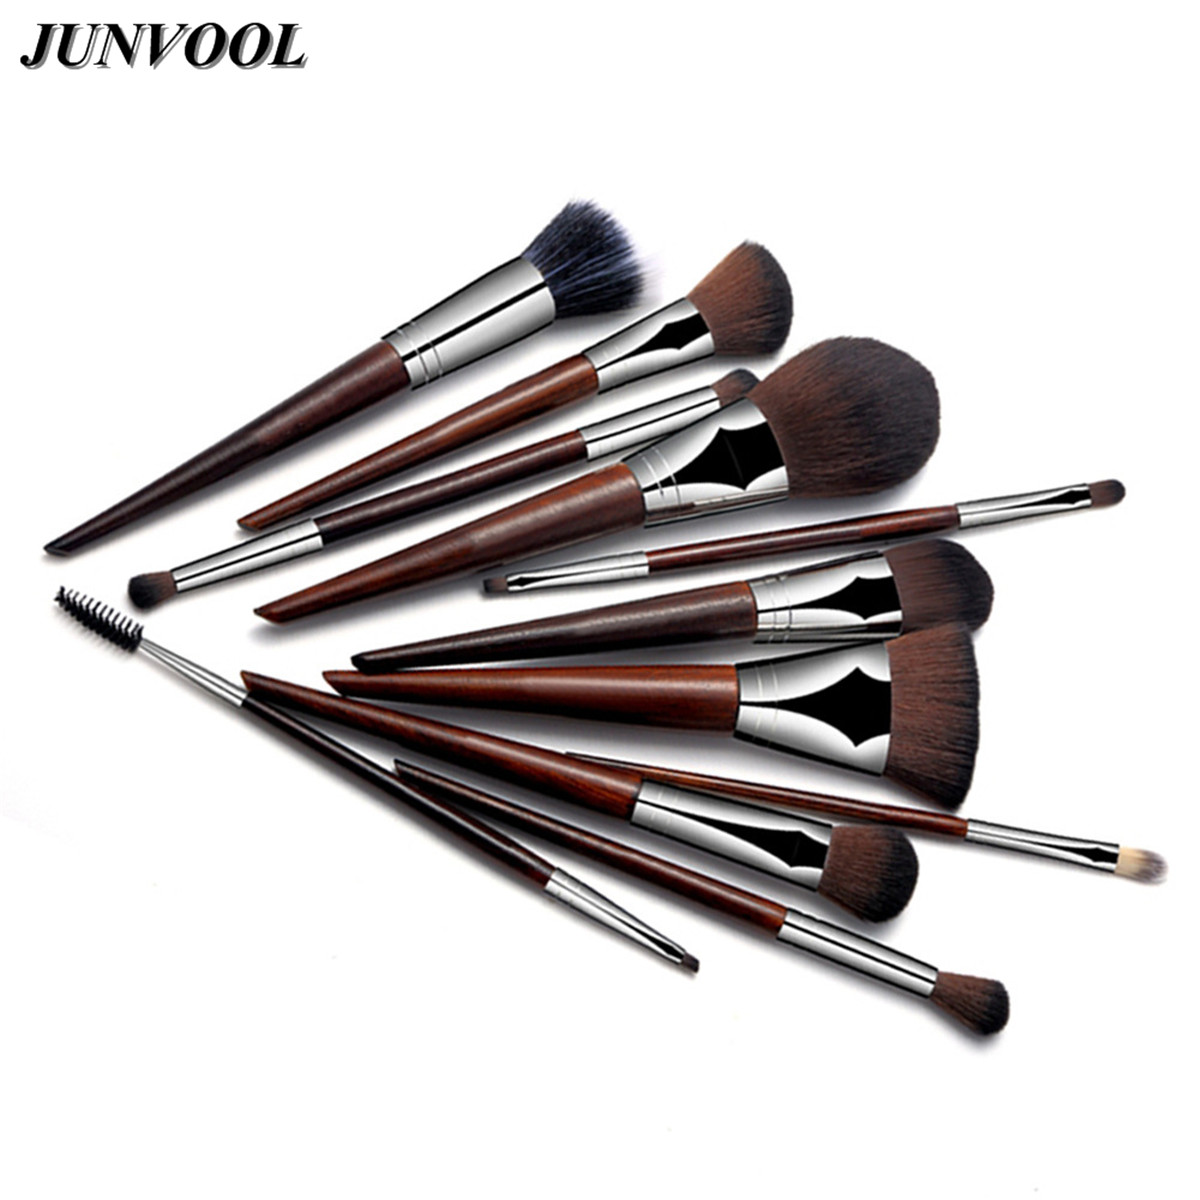 Rosewood Makeup Brushes Set Powder Foundation Eyeshadow Lip Brushes Professional Facial Care Make Up Brush Kit Cosmetics Tool kesmall 10pcs professional makeup brushes set facial eyebrow eyeshadow powder foundation brush cosmetics make up tools co430